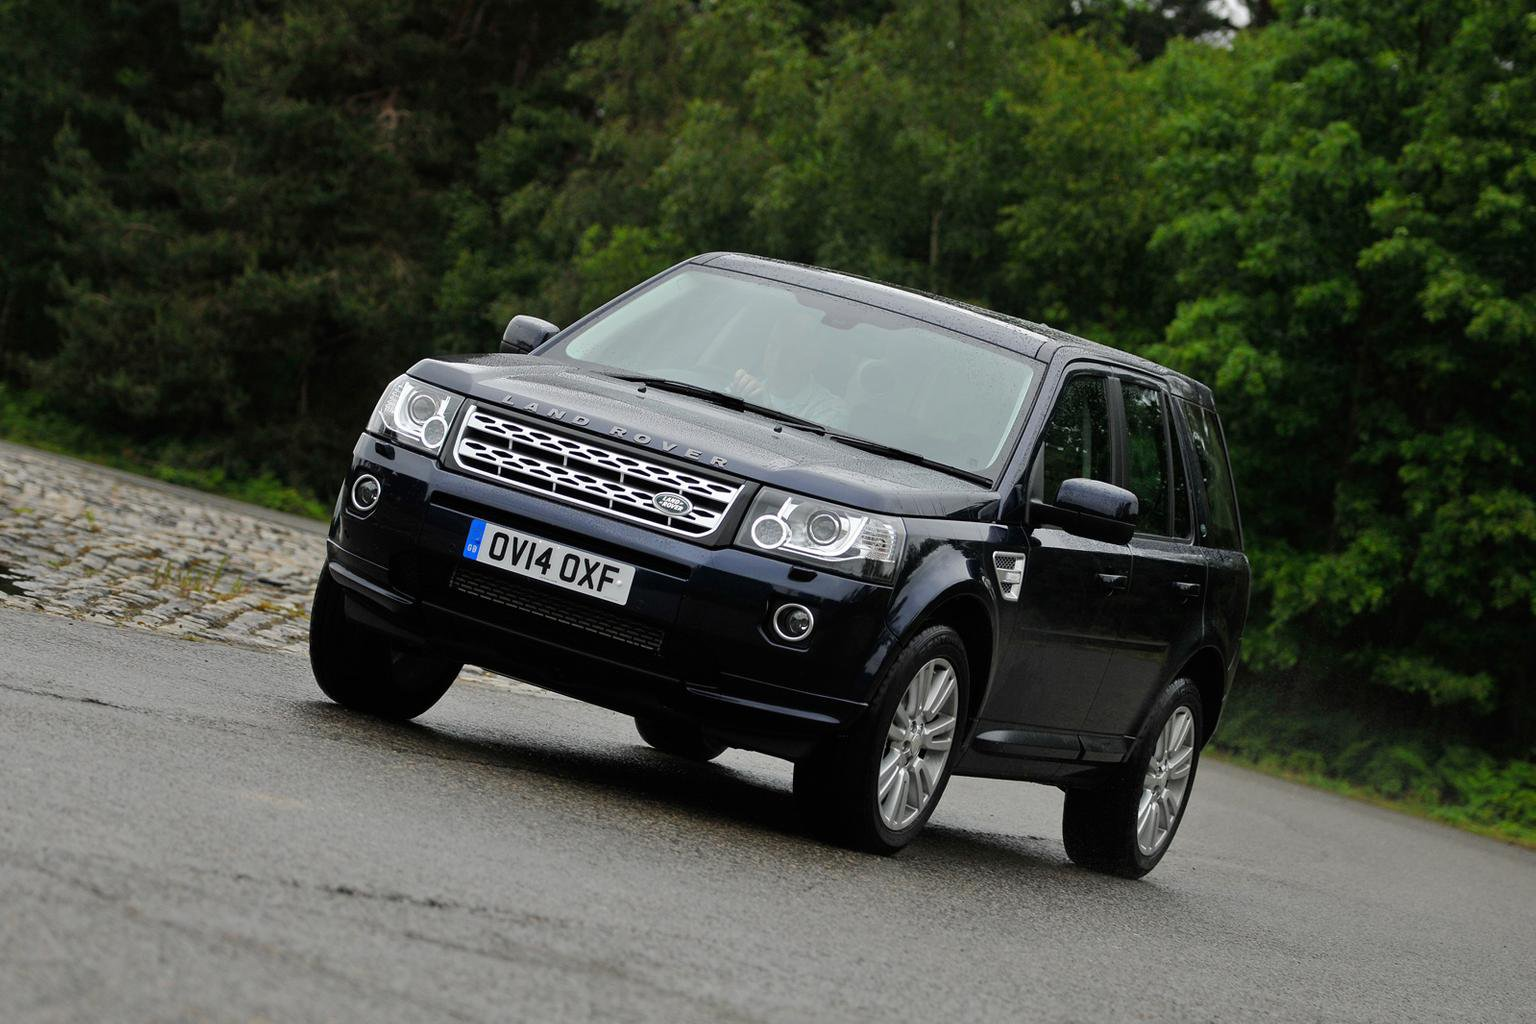 Deal of the Day: Land Rover Freelander